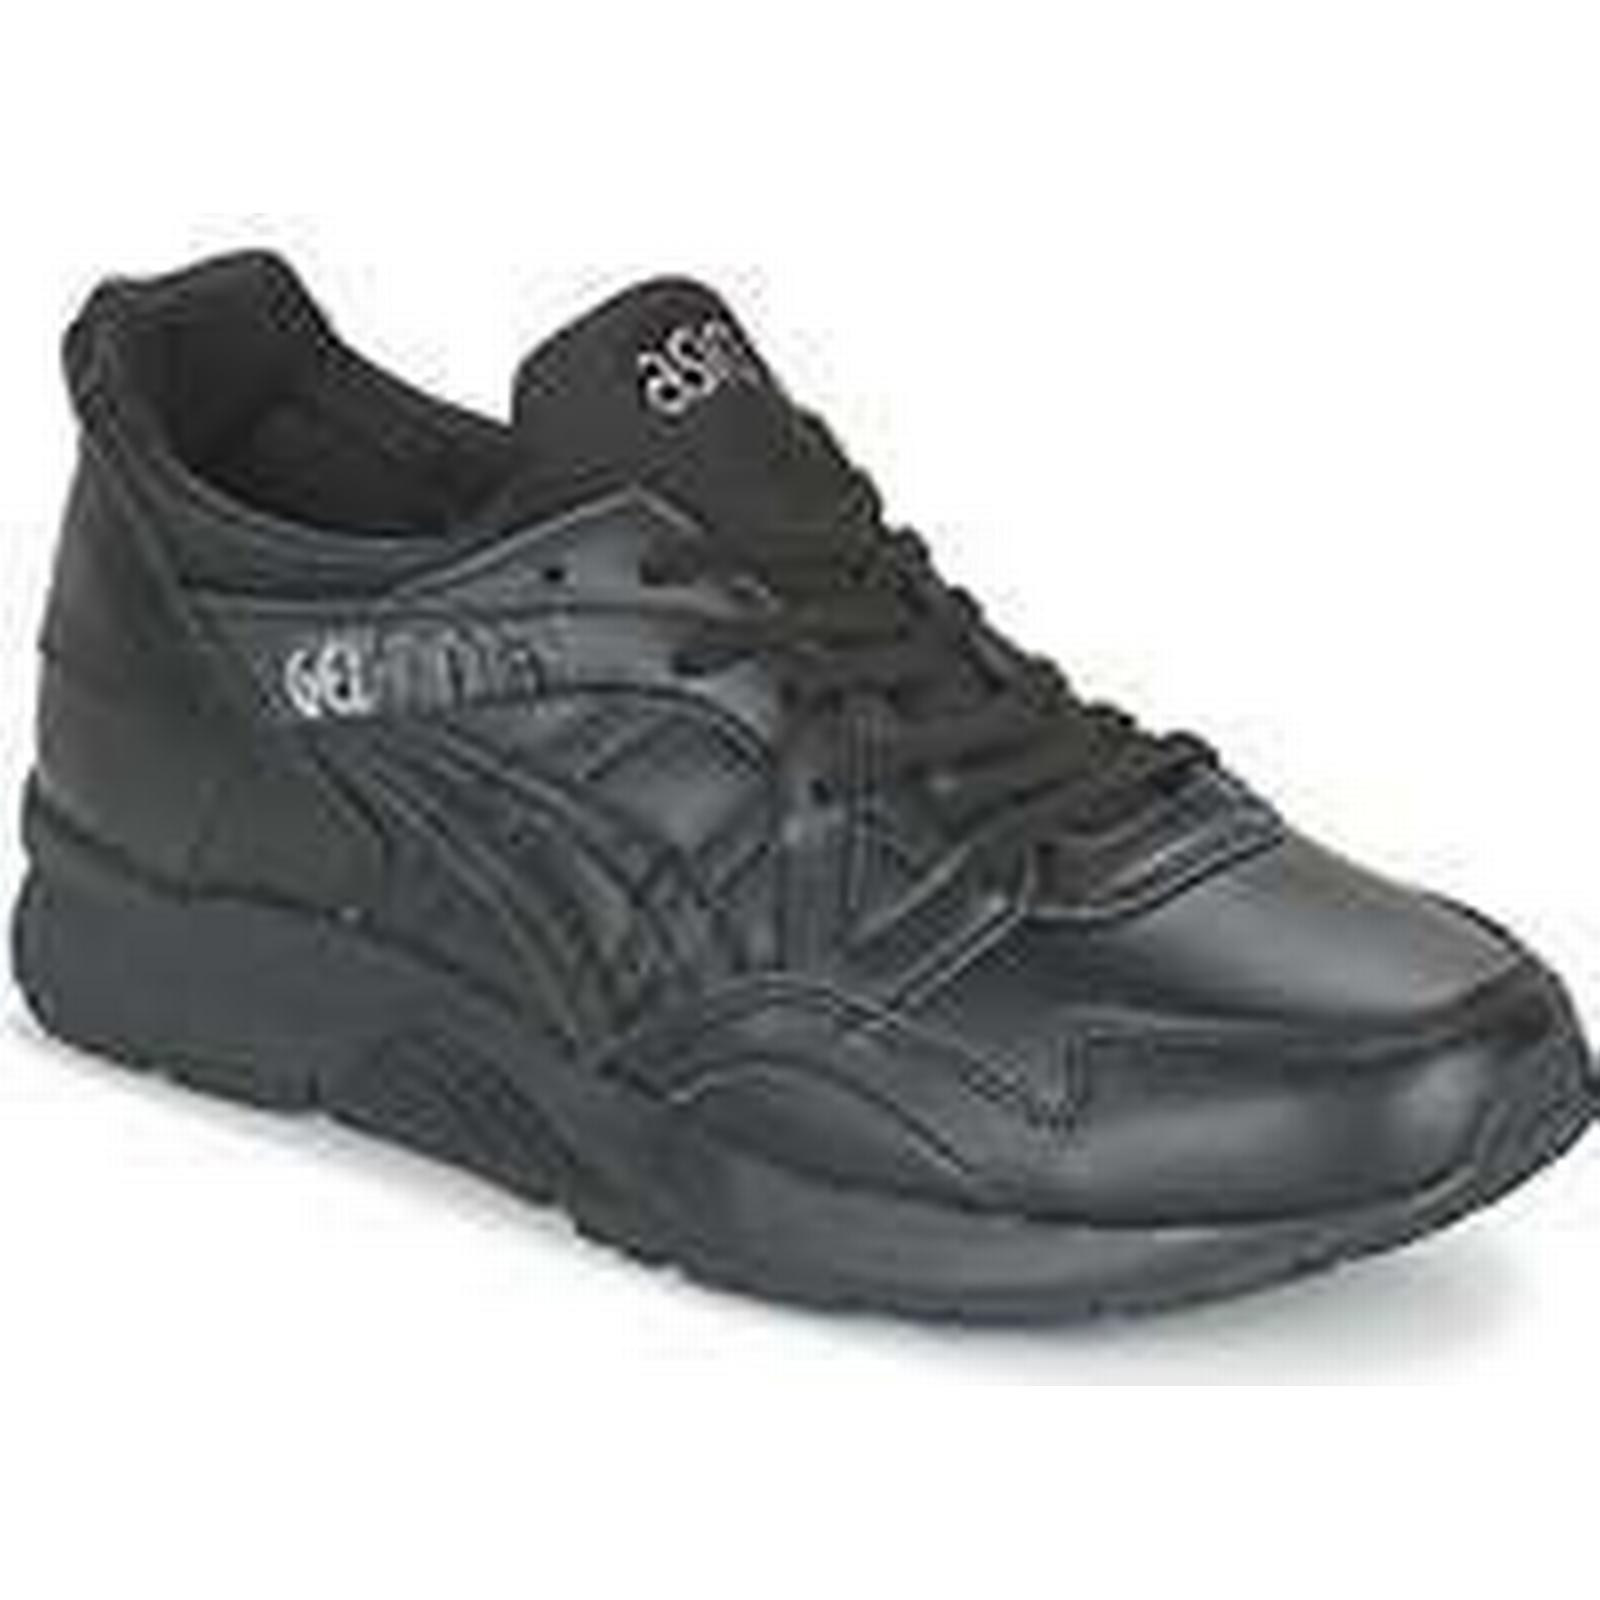 Spartoo.co.uk Asics Shoes GEL-LYTE V women's Shoes Asics (Trainers) in Black 4f5c09